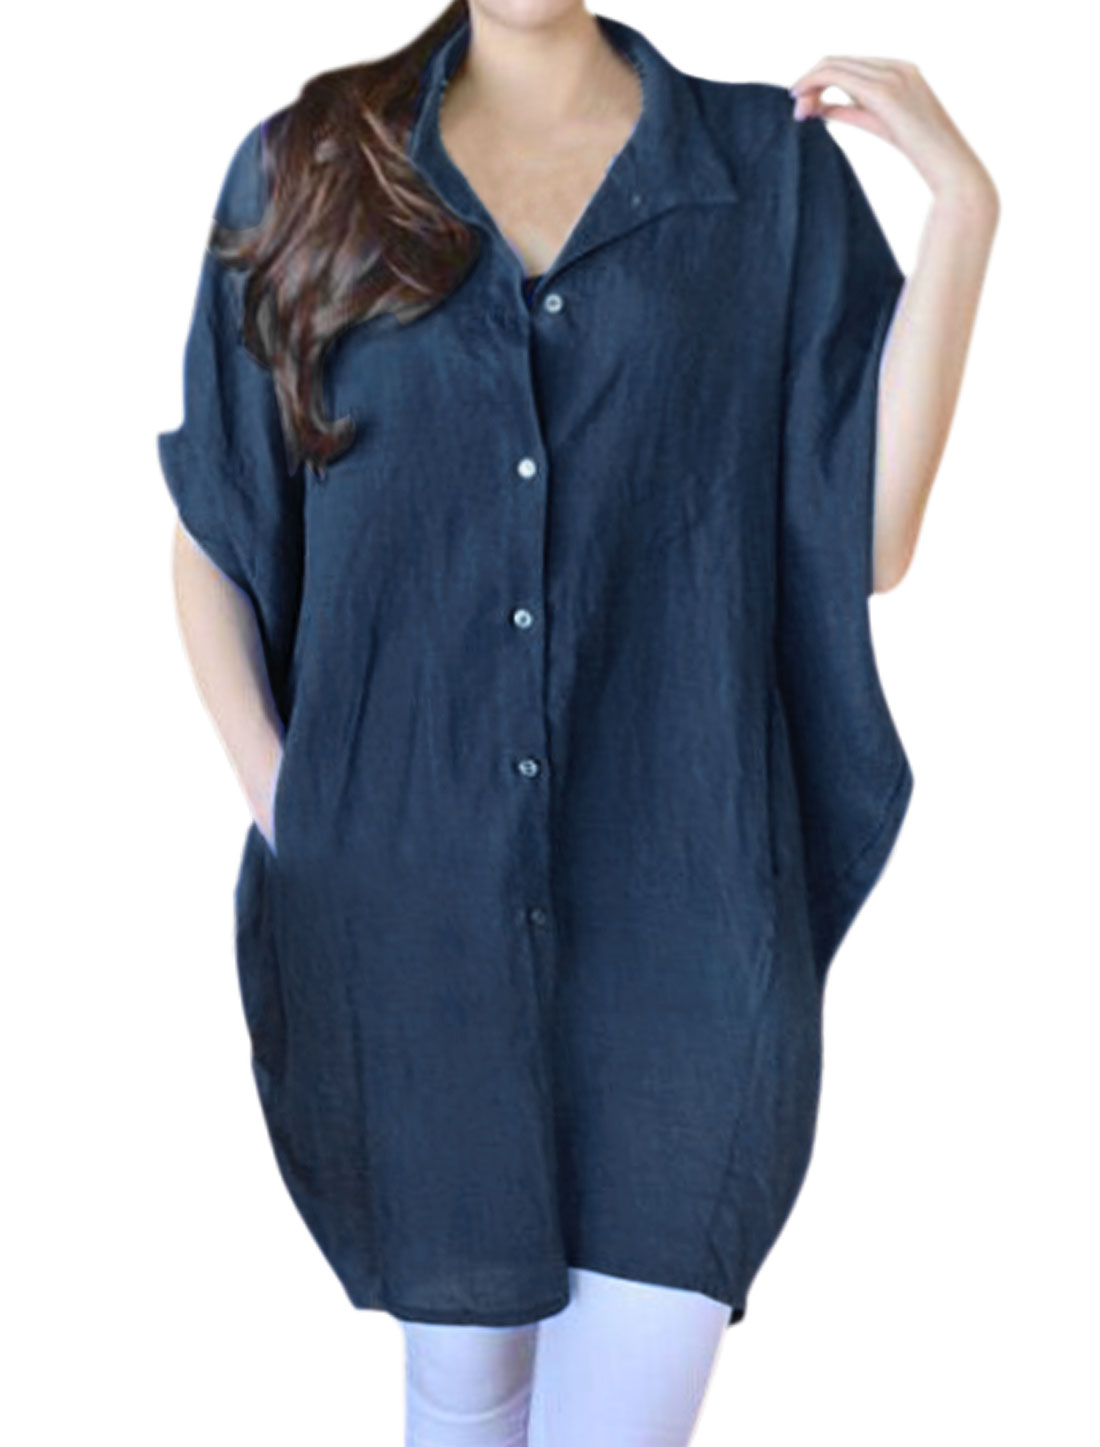 Women Batwing Sleeves Button Up Oversized Shirt Dress Navy Blue M